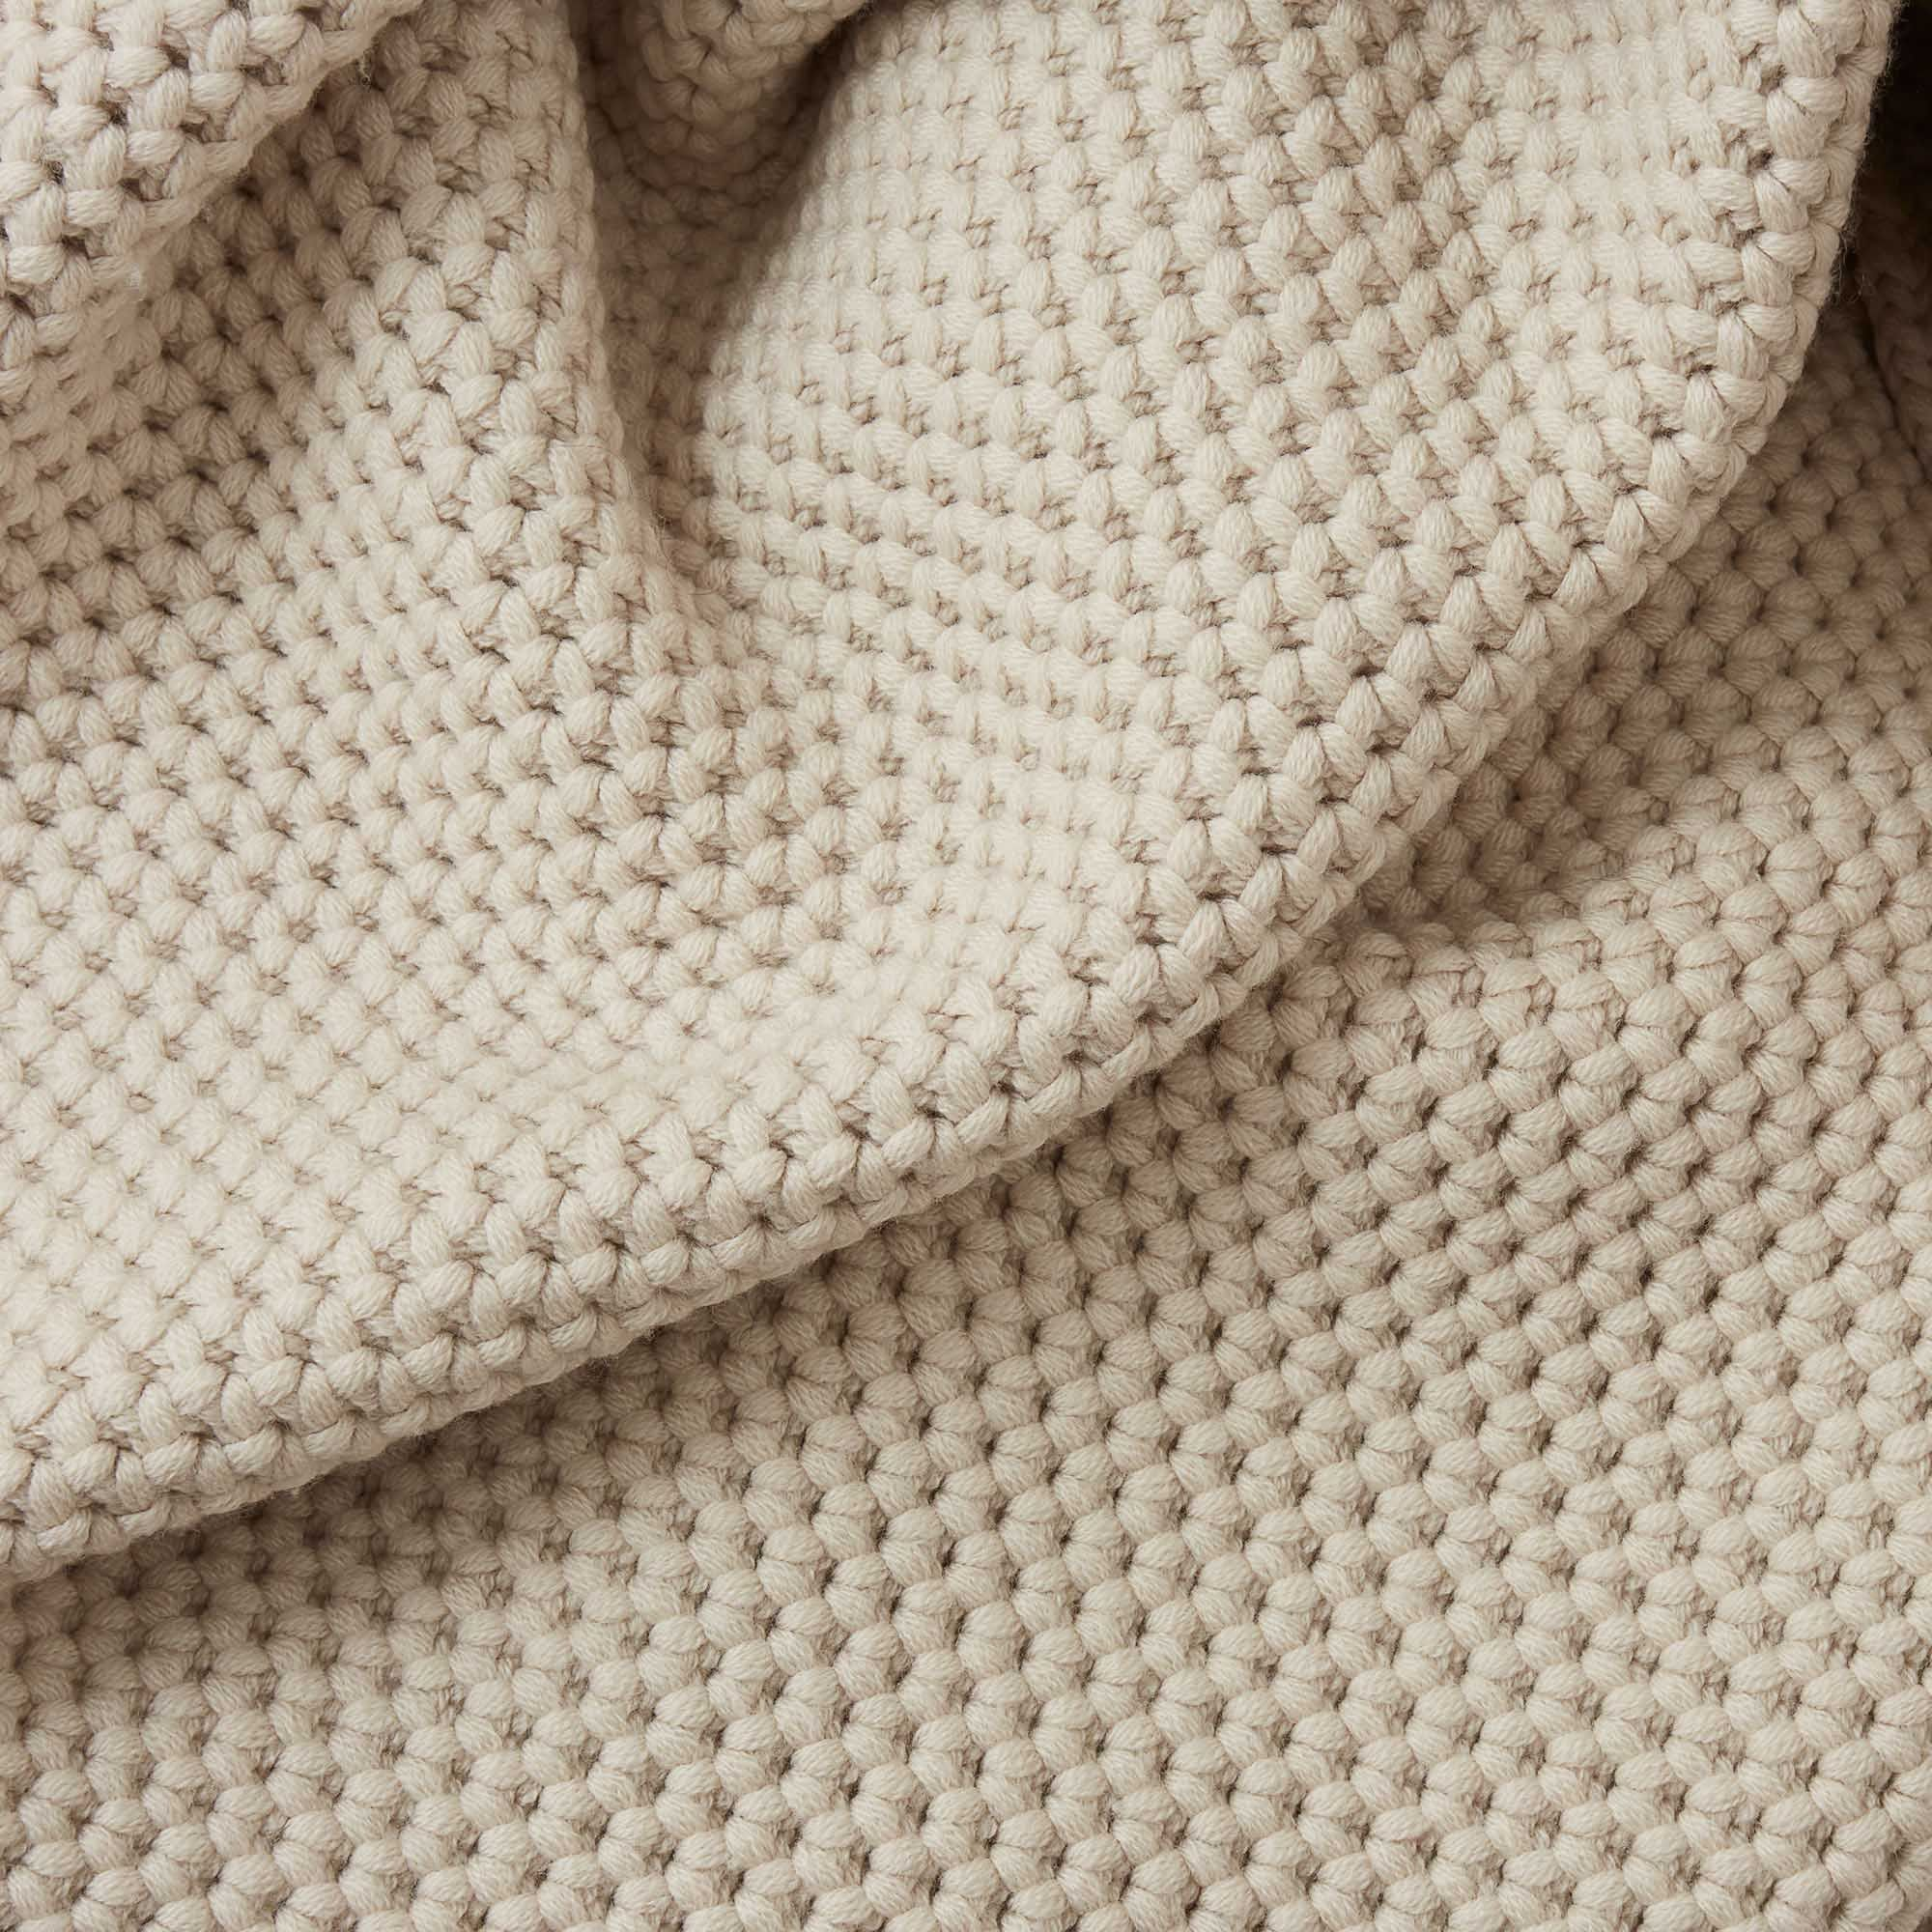 With its unique honeycomb structure, the exquisite Arpina has small pockets to trap air and therefore keep you warm when temperatures dip. Made in Italy from lush merino wool, the beautiful chunky knit of the blanket gives the design fabulous texture and a light bounce. Throw over your bed or sofa or simply wrap up by the fire for luxury warmth and style.